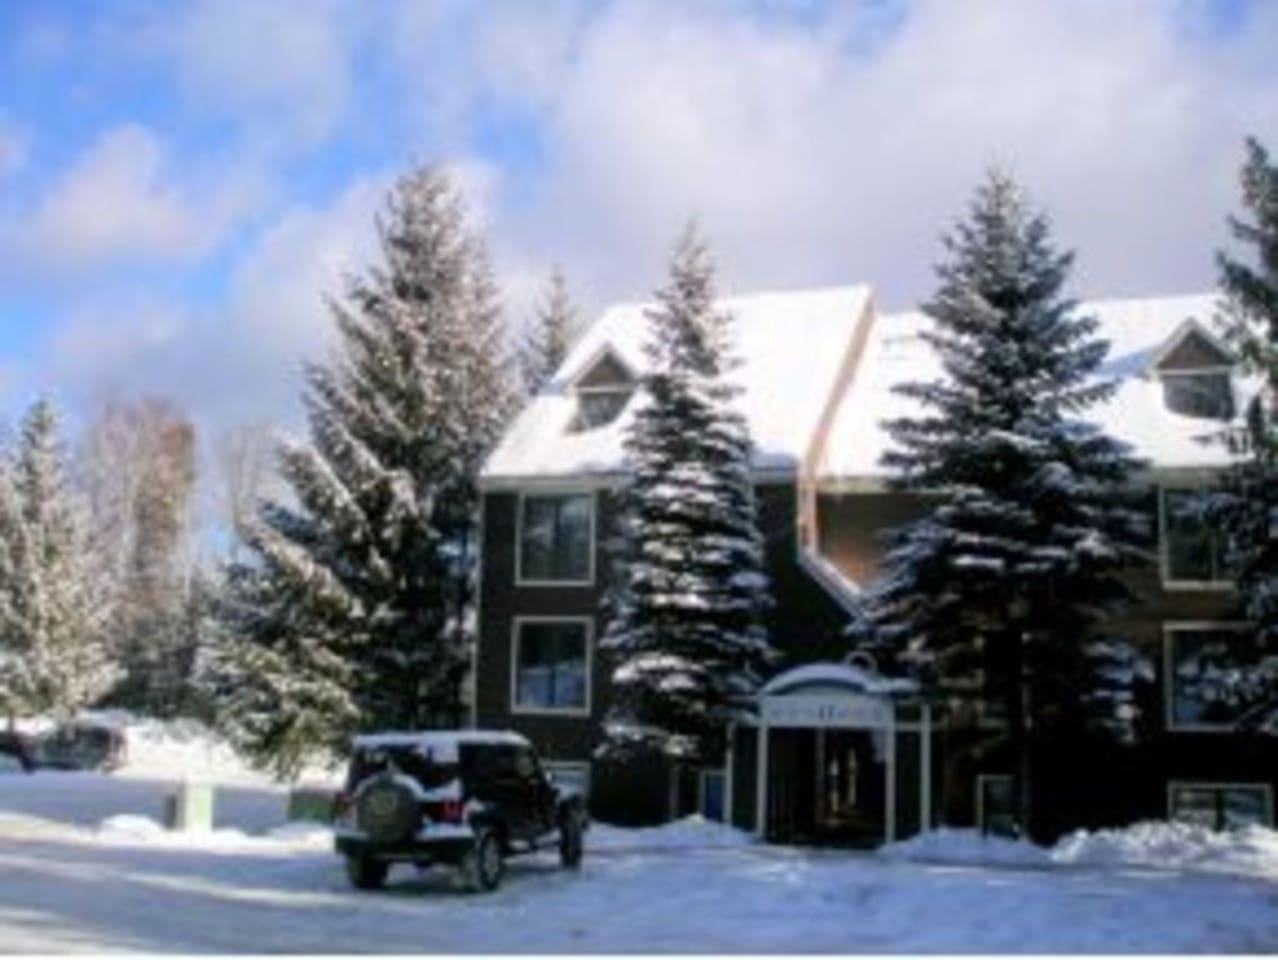 Newly renovated corner-unit with lots of natural light. Enjoy ski-on/ski-off convenience